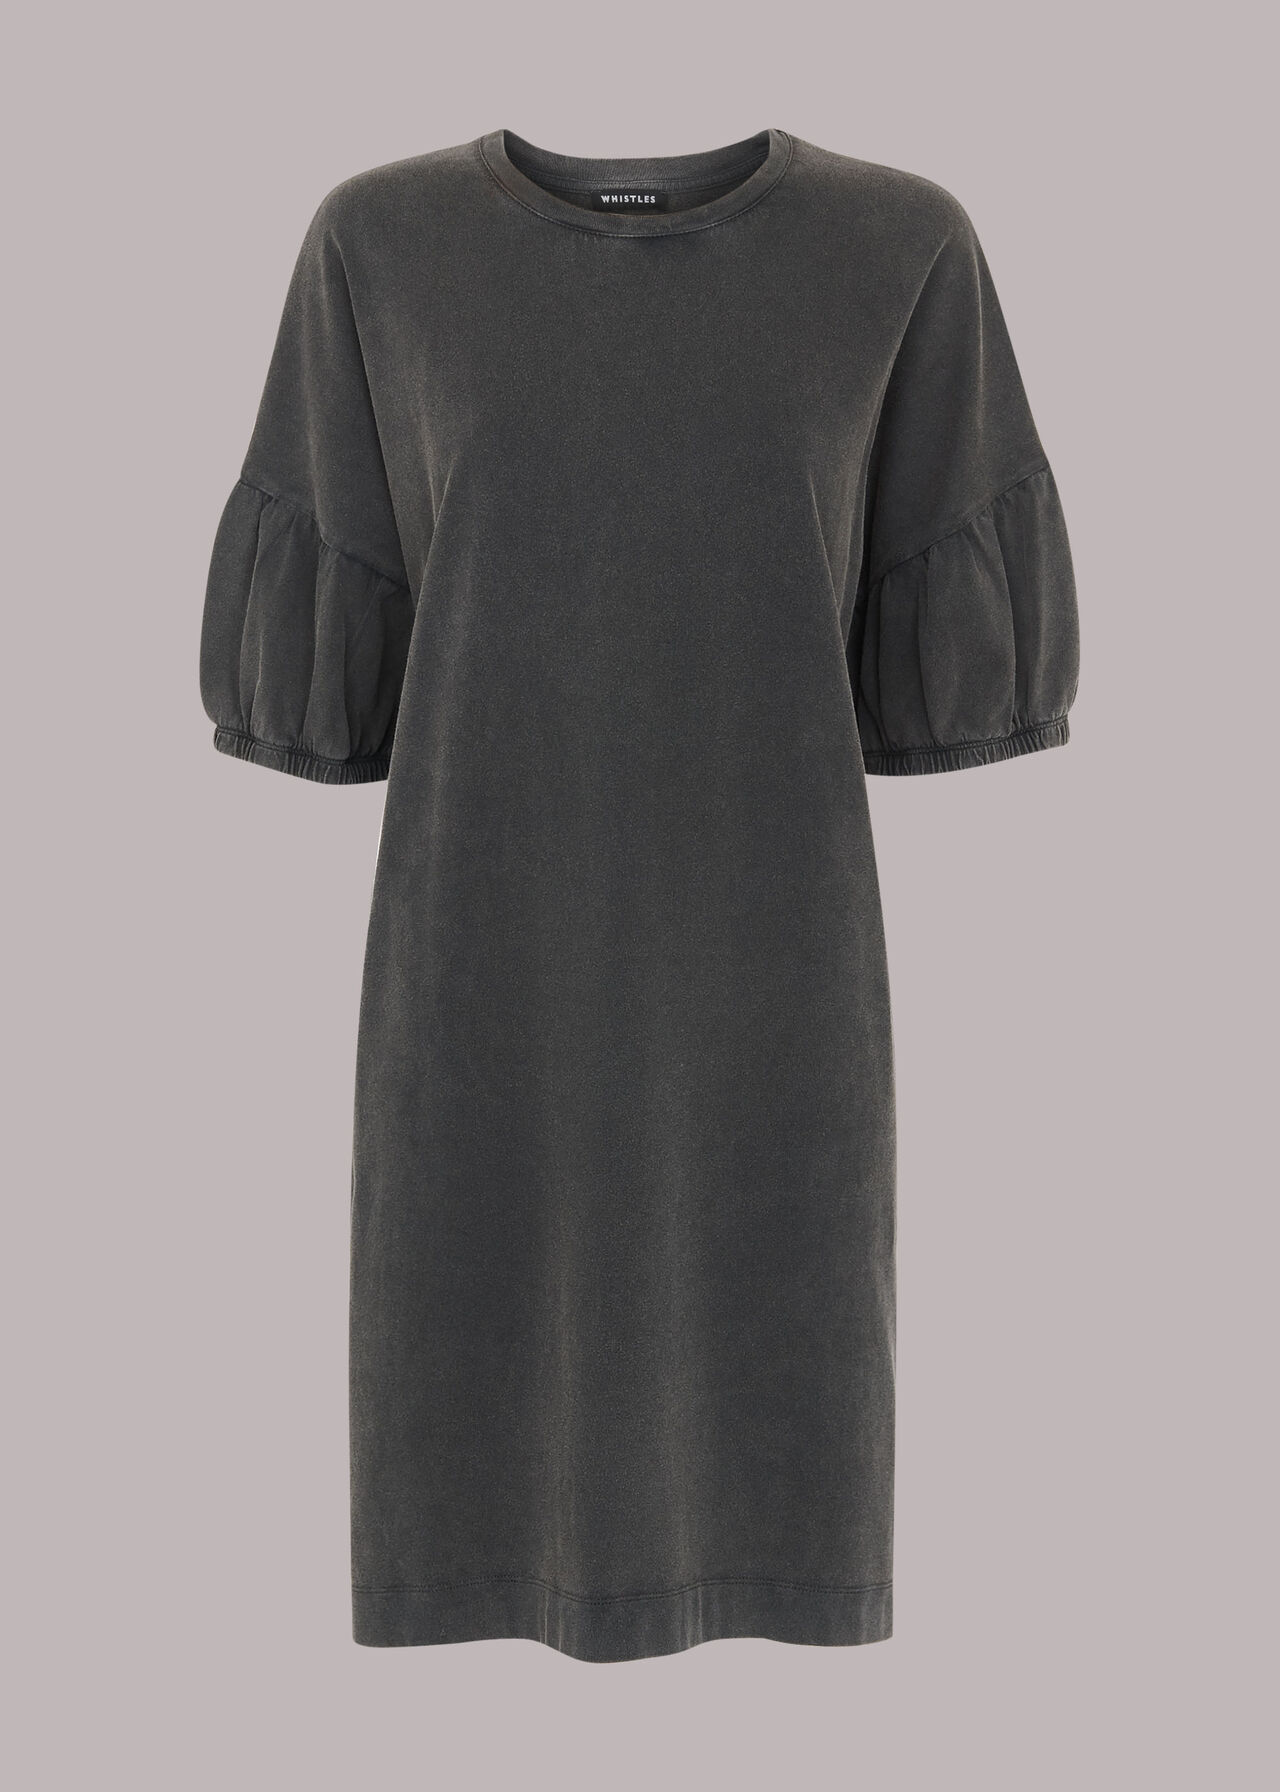 Gathered Sleeve Jersey Dress